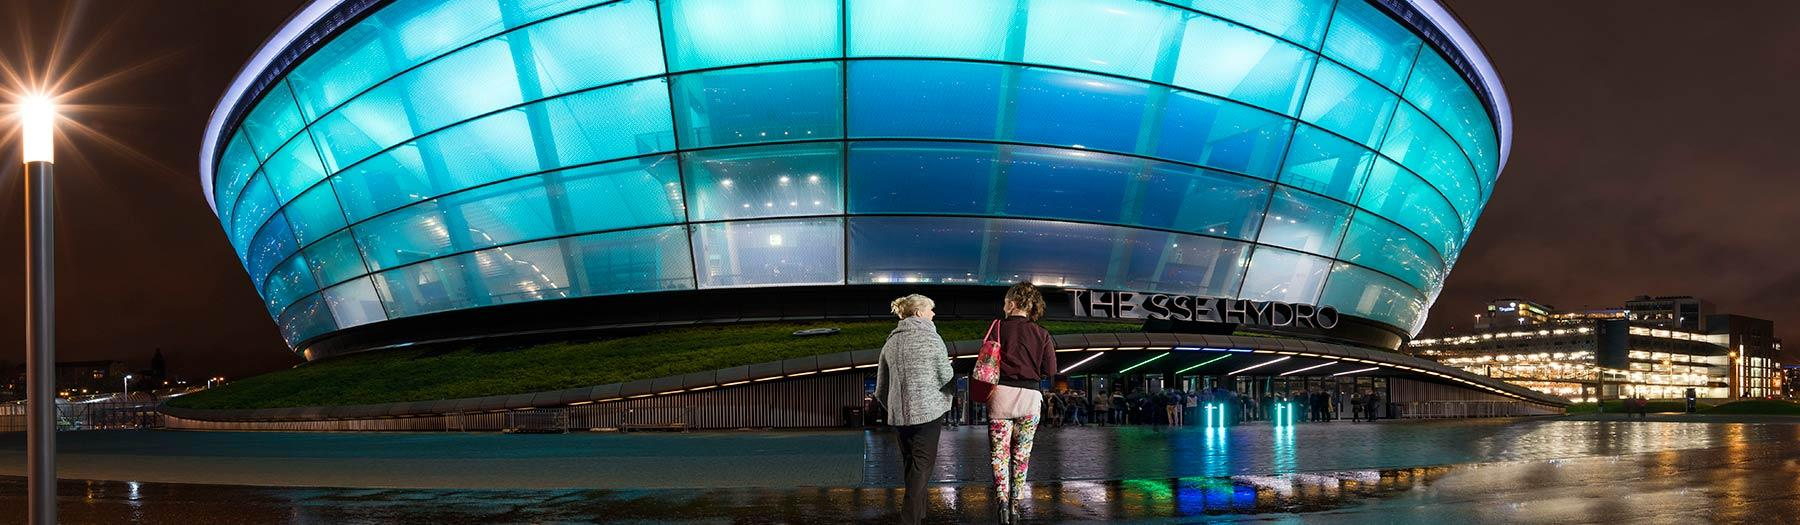 The SSE Hydro at night